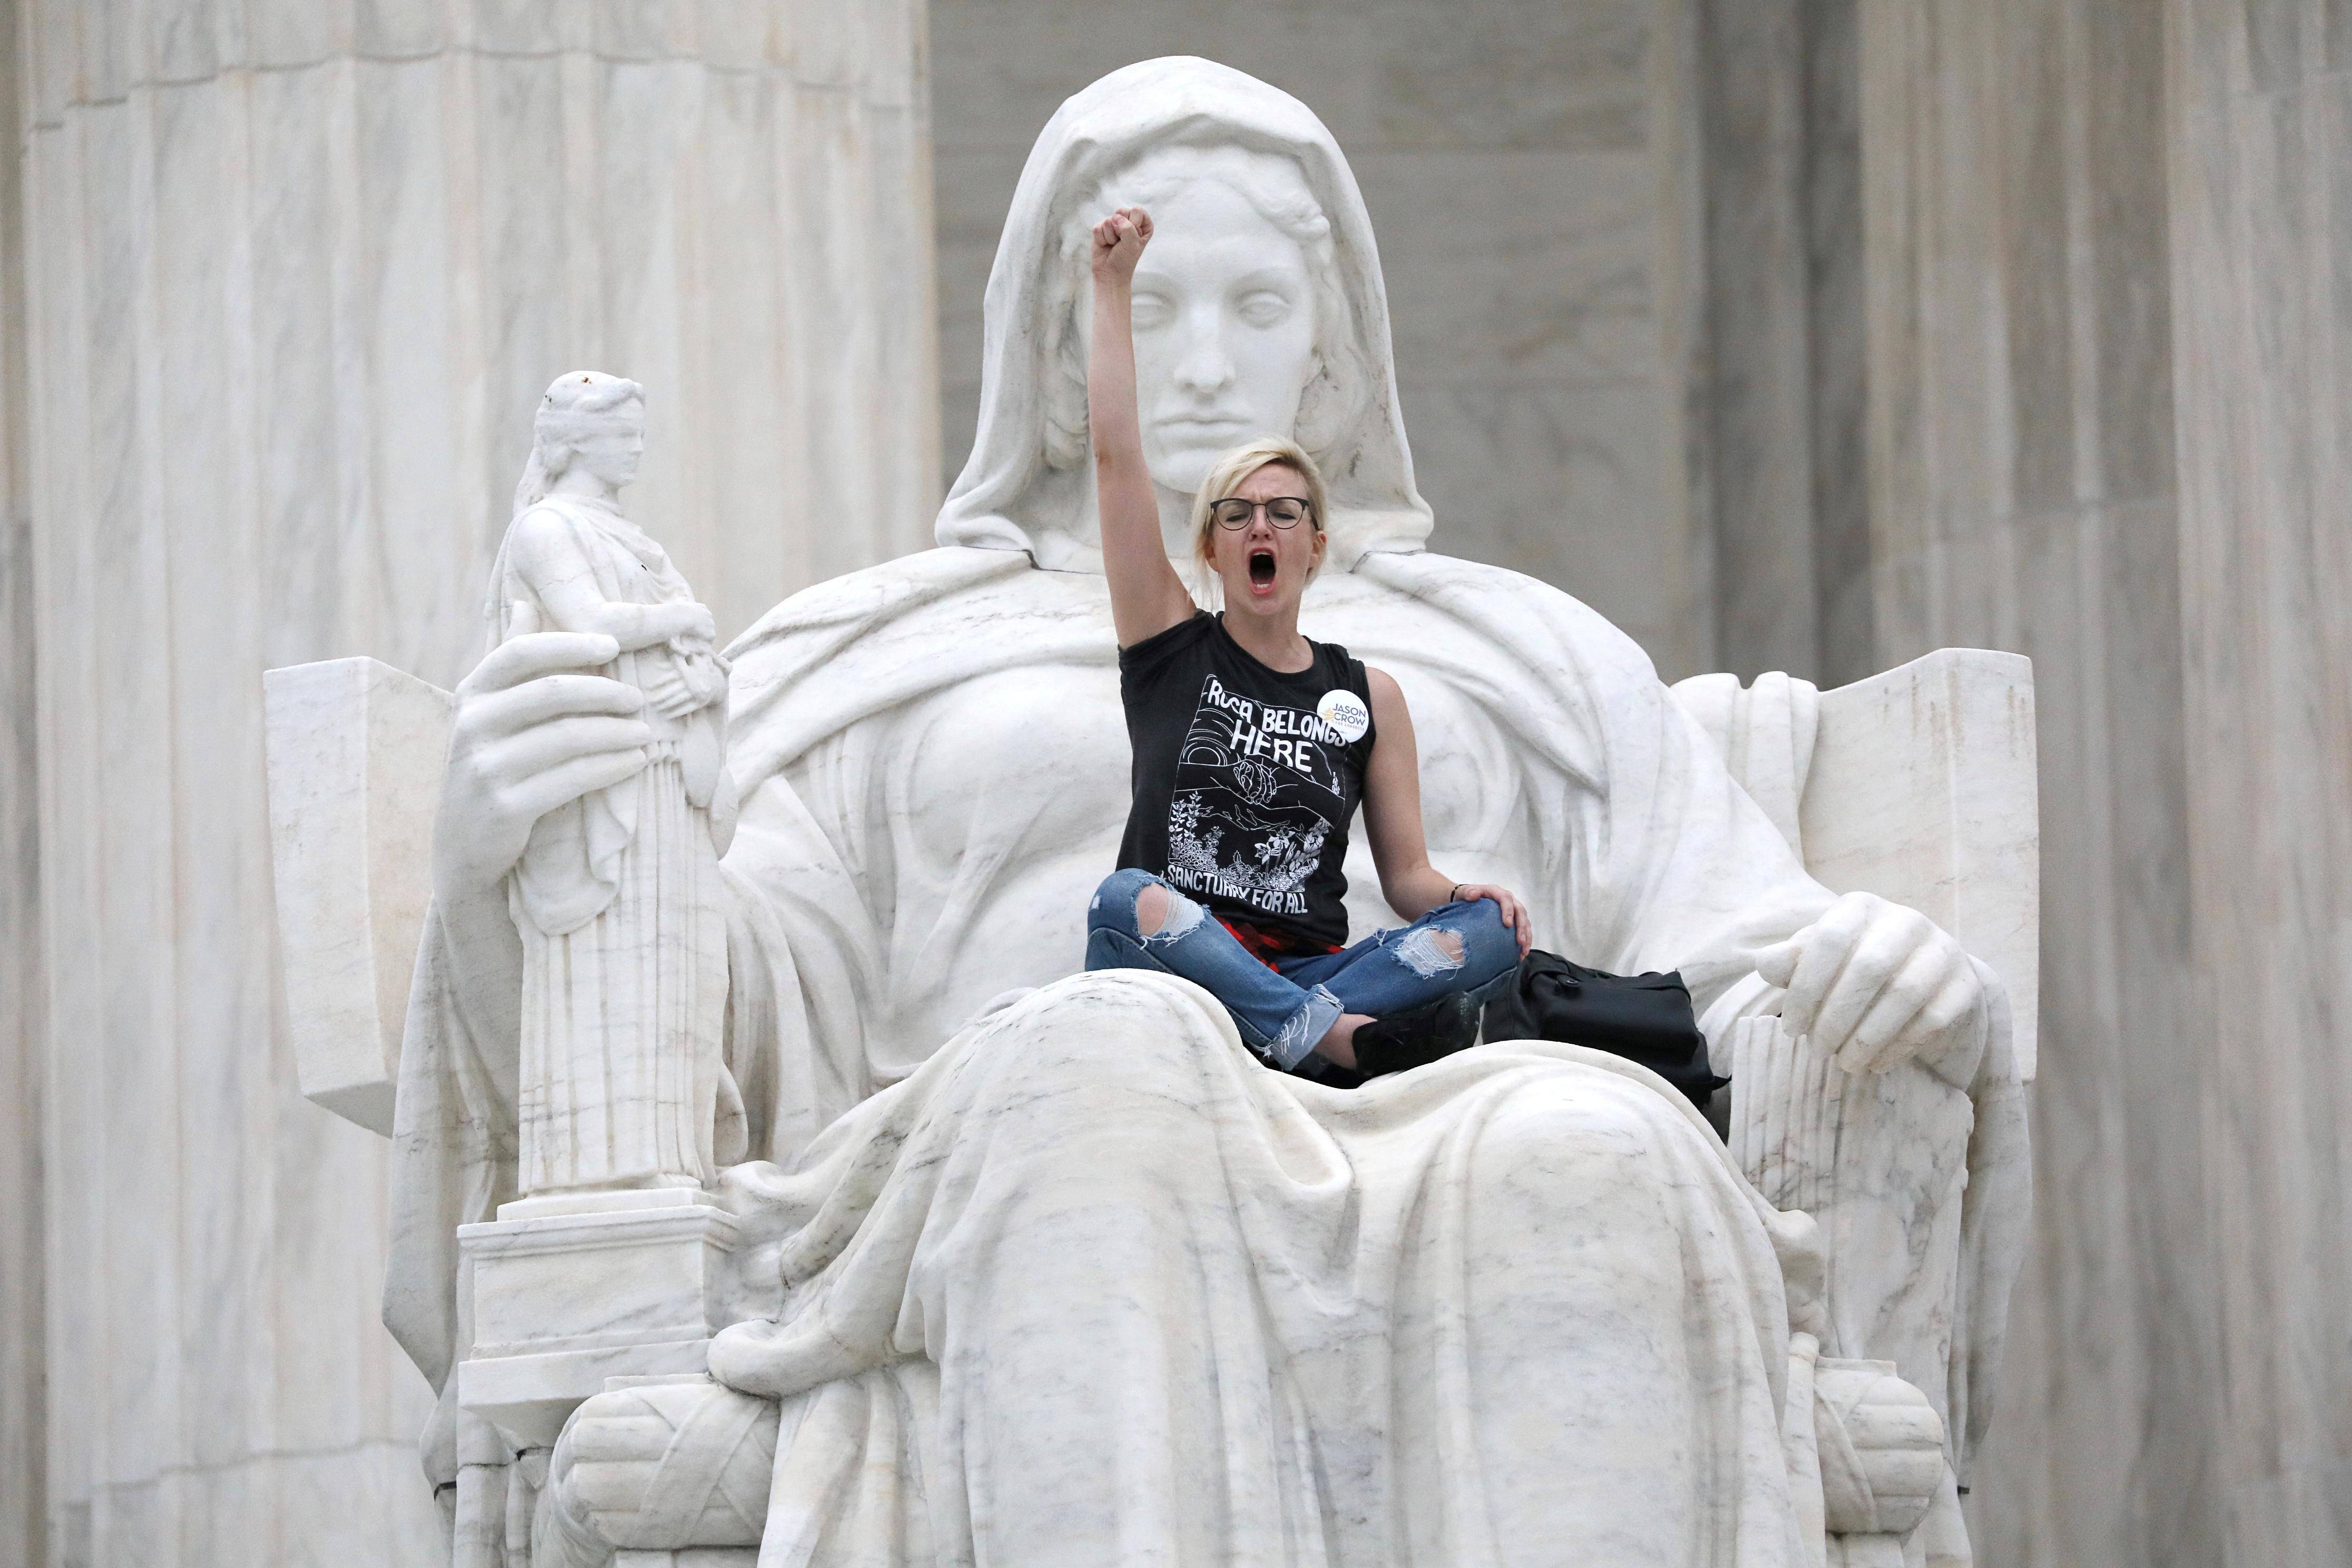 """<p>A protester sits on the lap of """"Lady Justice"""" on the steps of the U.S. Supreme Court building as demonstrators storm the steps and doors of the Supreme Court while Judge Brett Kavanaugh is being sworn in as an Associate Justice of the court inside on Capitol Hill in Washington, D.C., Oct. 6, 2018. (Photo: Jonathan Ernst/Reuters) </p>"""